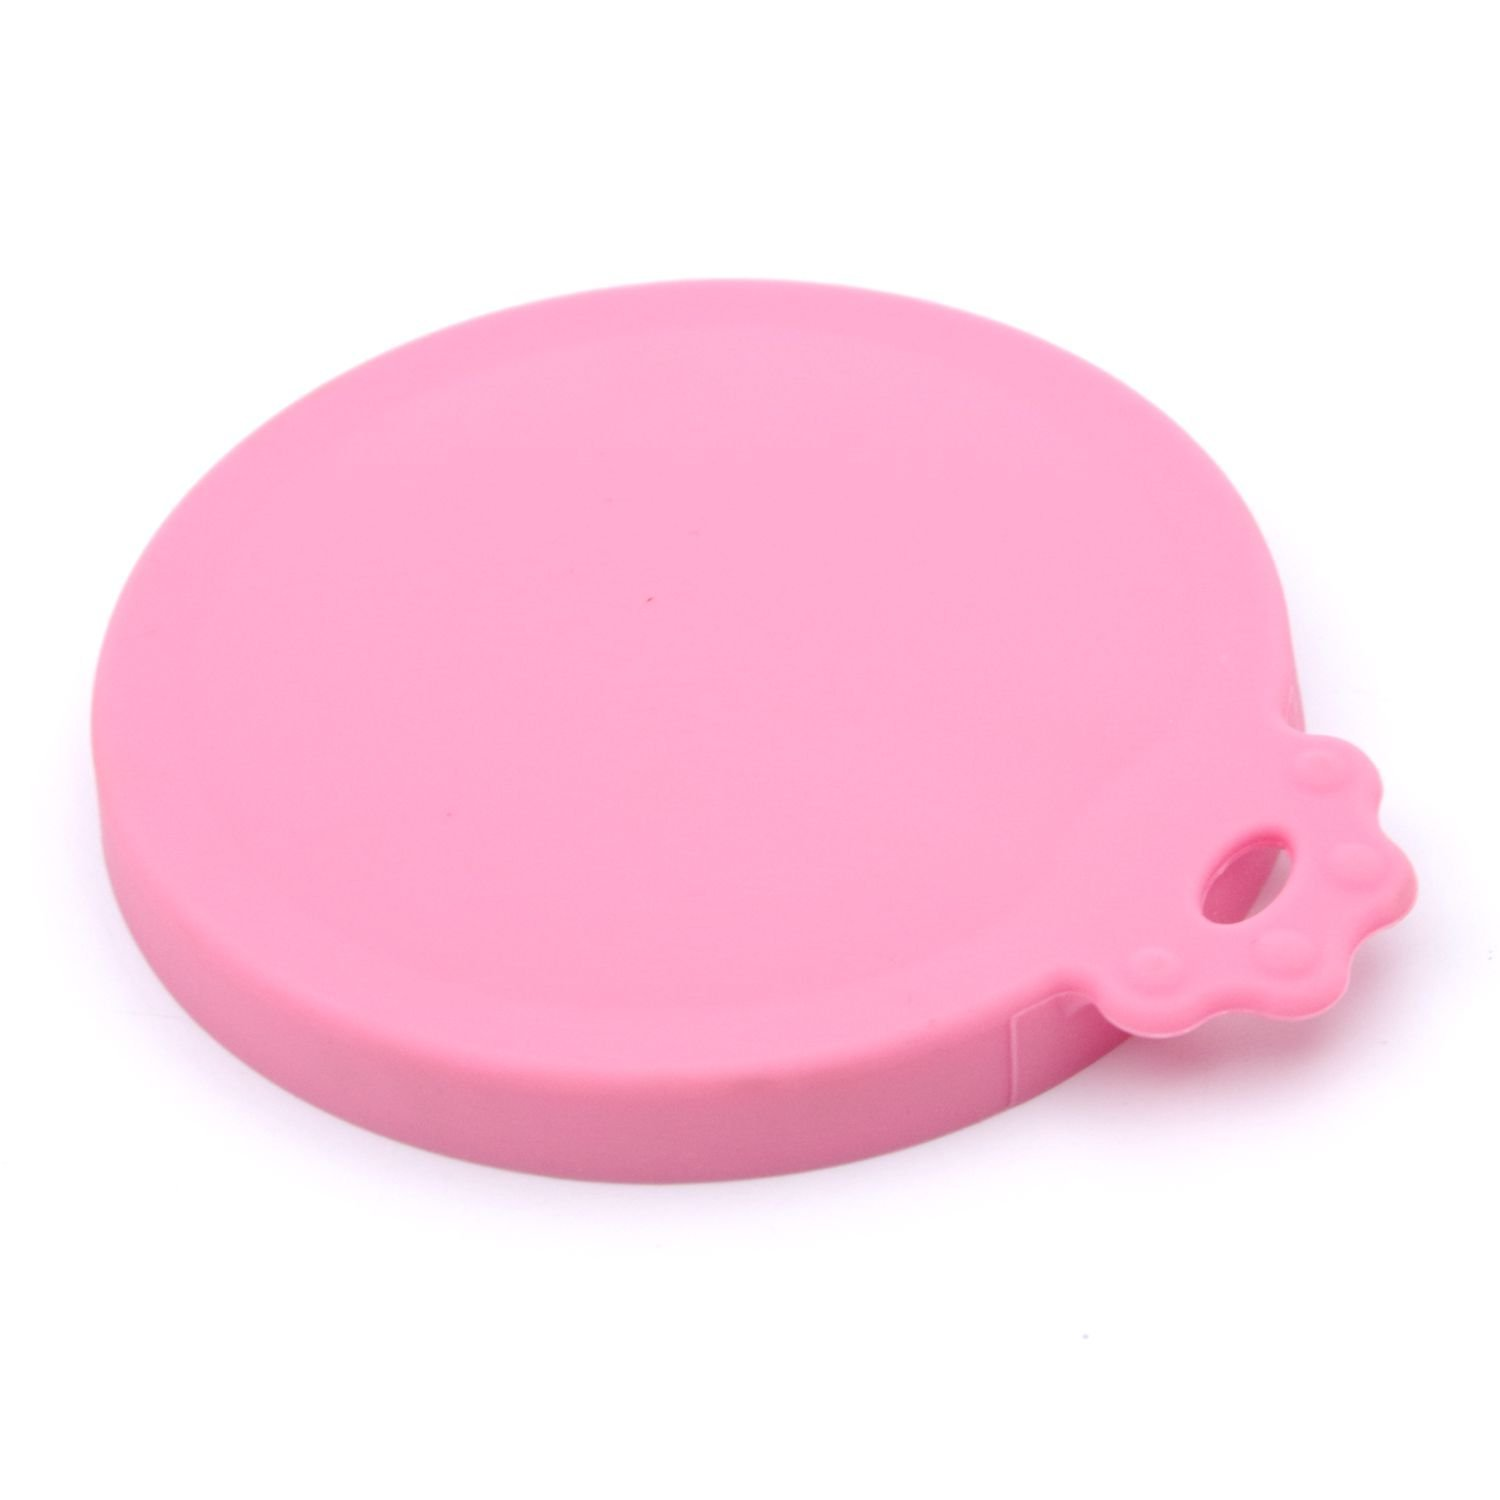 Pet-Food-Can-Lid-Covers-Universal-BPA-Free-Silicone-Can-Tops-Cover-For-Dog-Cat thumbnail 24